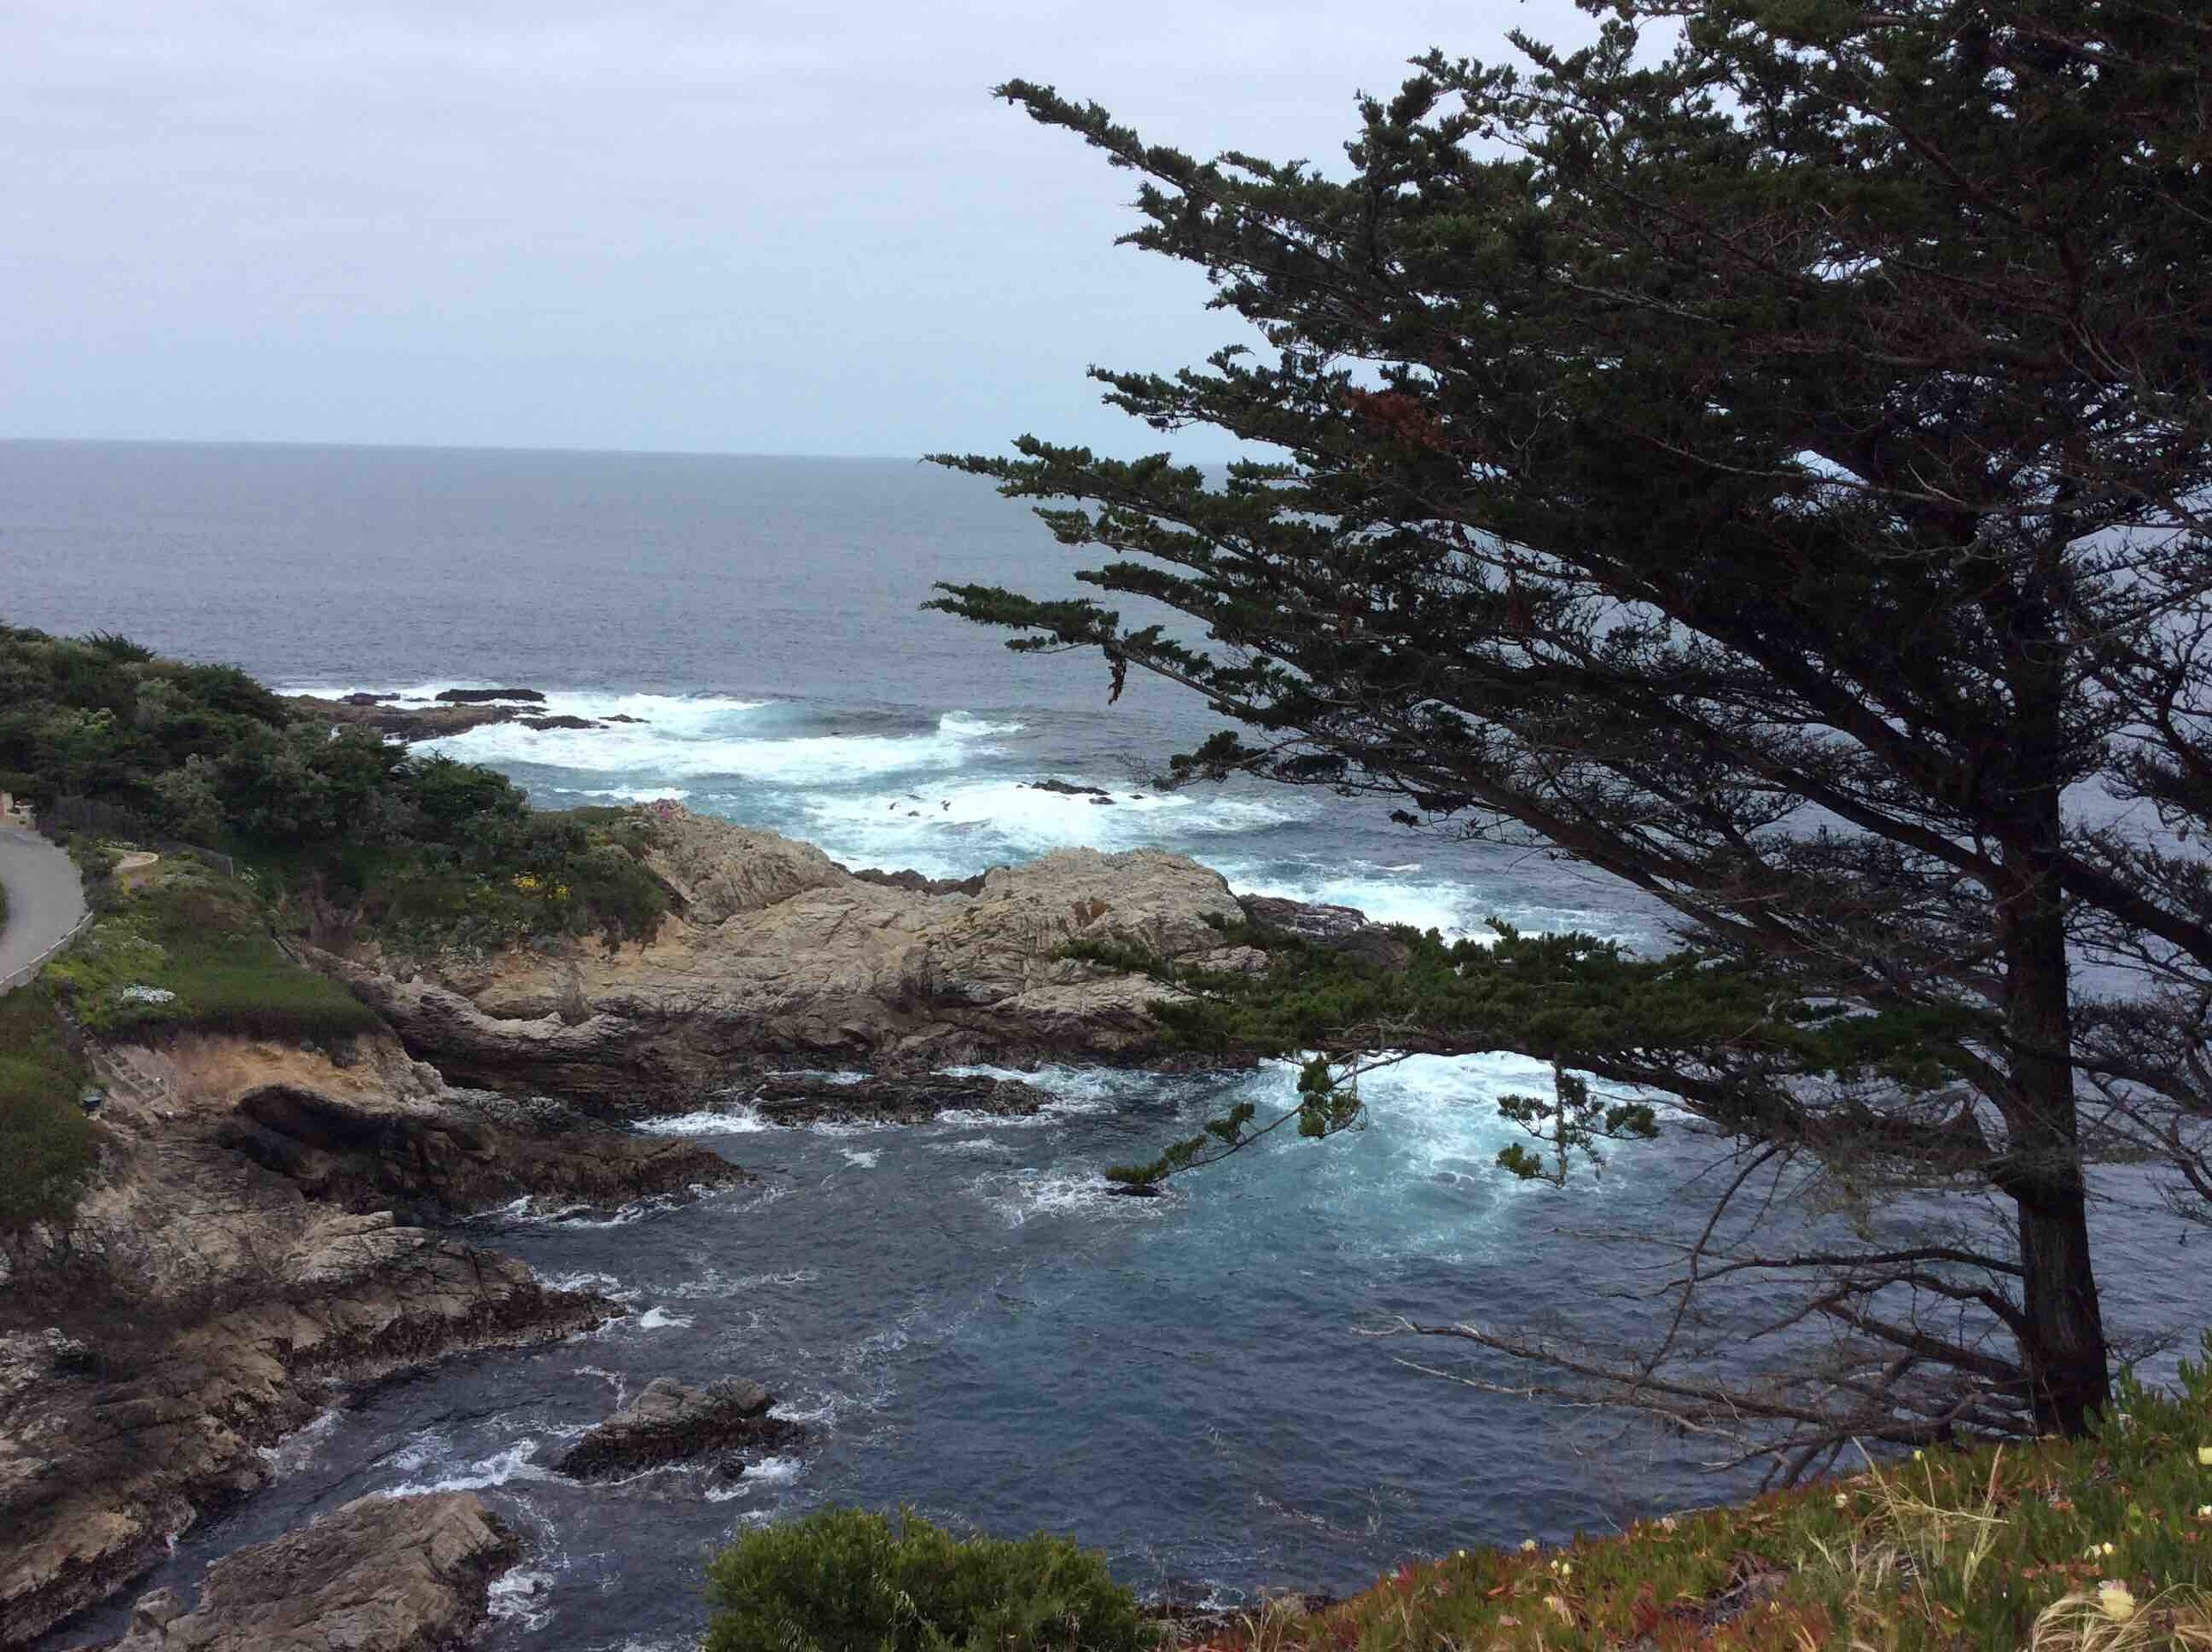 17-Mile Drive offers plenty of picturesque spots.